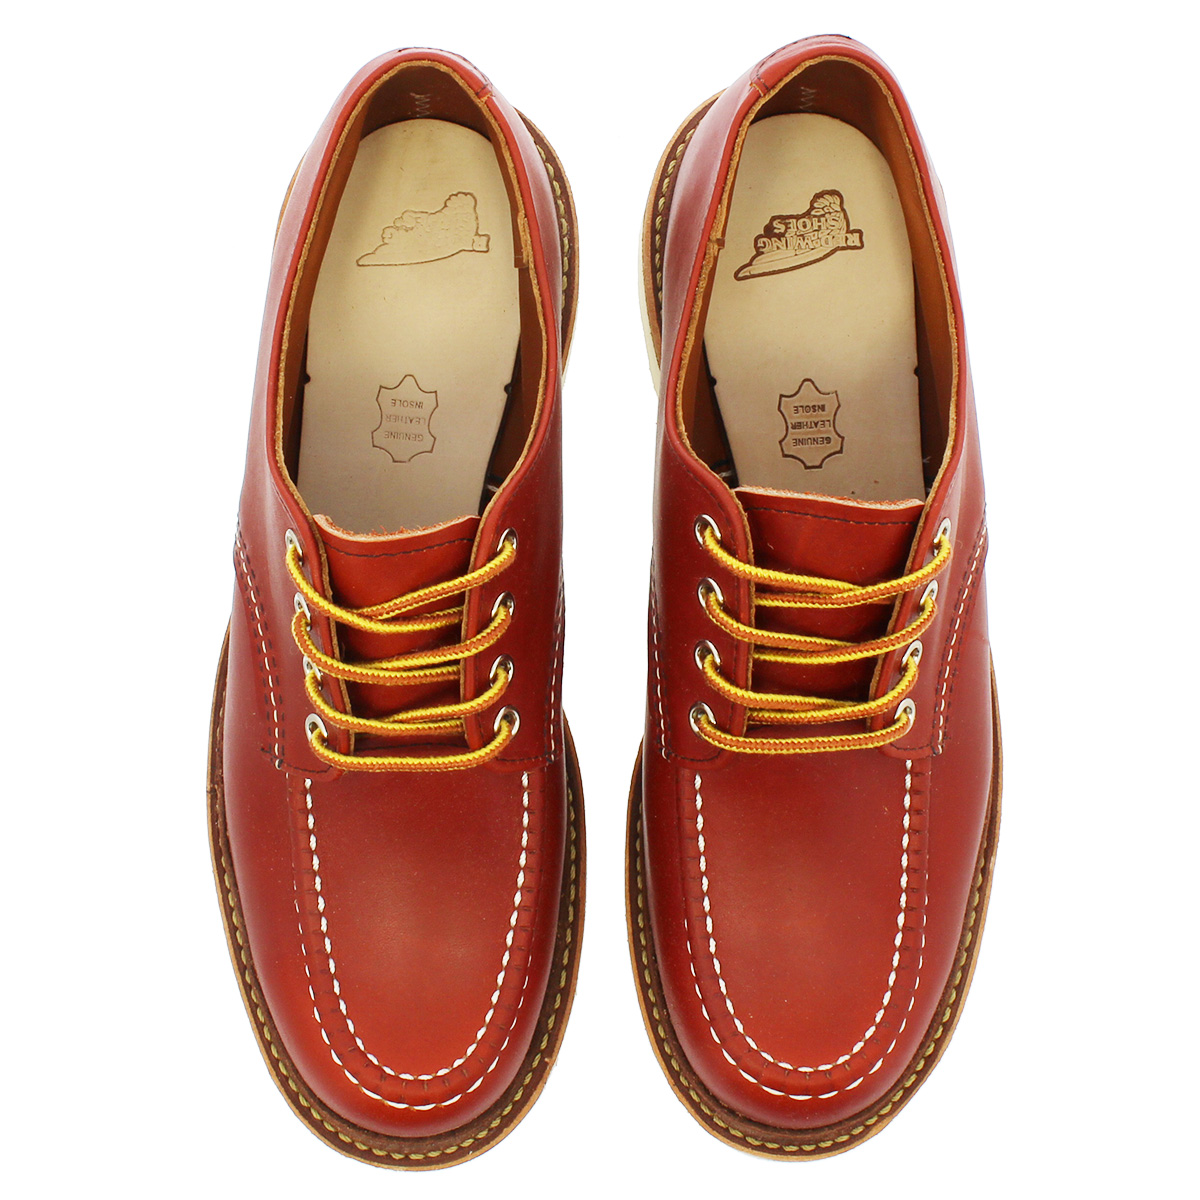 RED WING WORK OXFORD MOC TOE 【Dワイズ】 レッドウイング ワーク オックスフォード モック トゥ ORO RUSSET PORTAGE